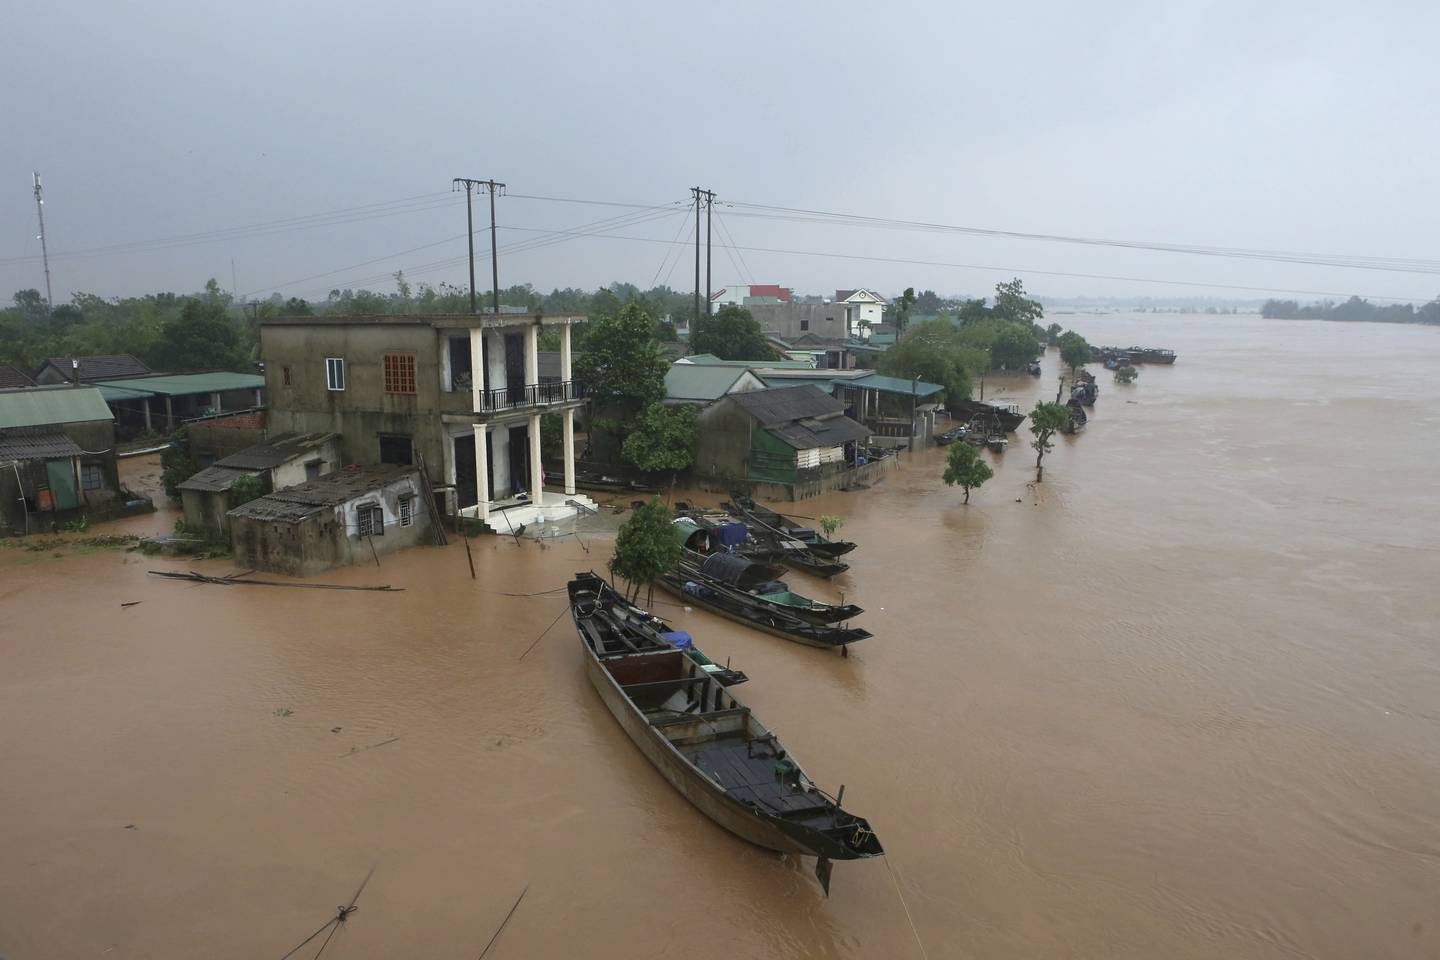 This aerial view shows a flooded village in Quang Tri province, Vietnam, Monday, Oct. 12, 2020. Torrential rains have flooded central Vietnam since last week as the region braces for more heavy rainfall. (Ho Cau/VNA via AP)